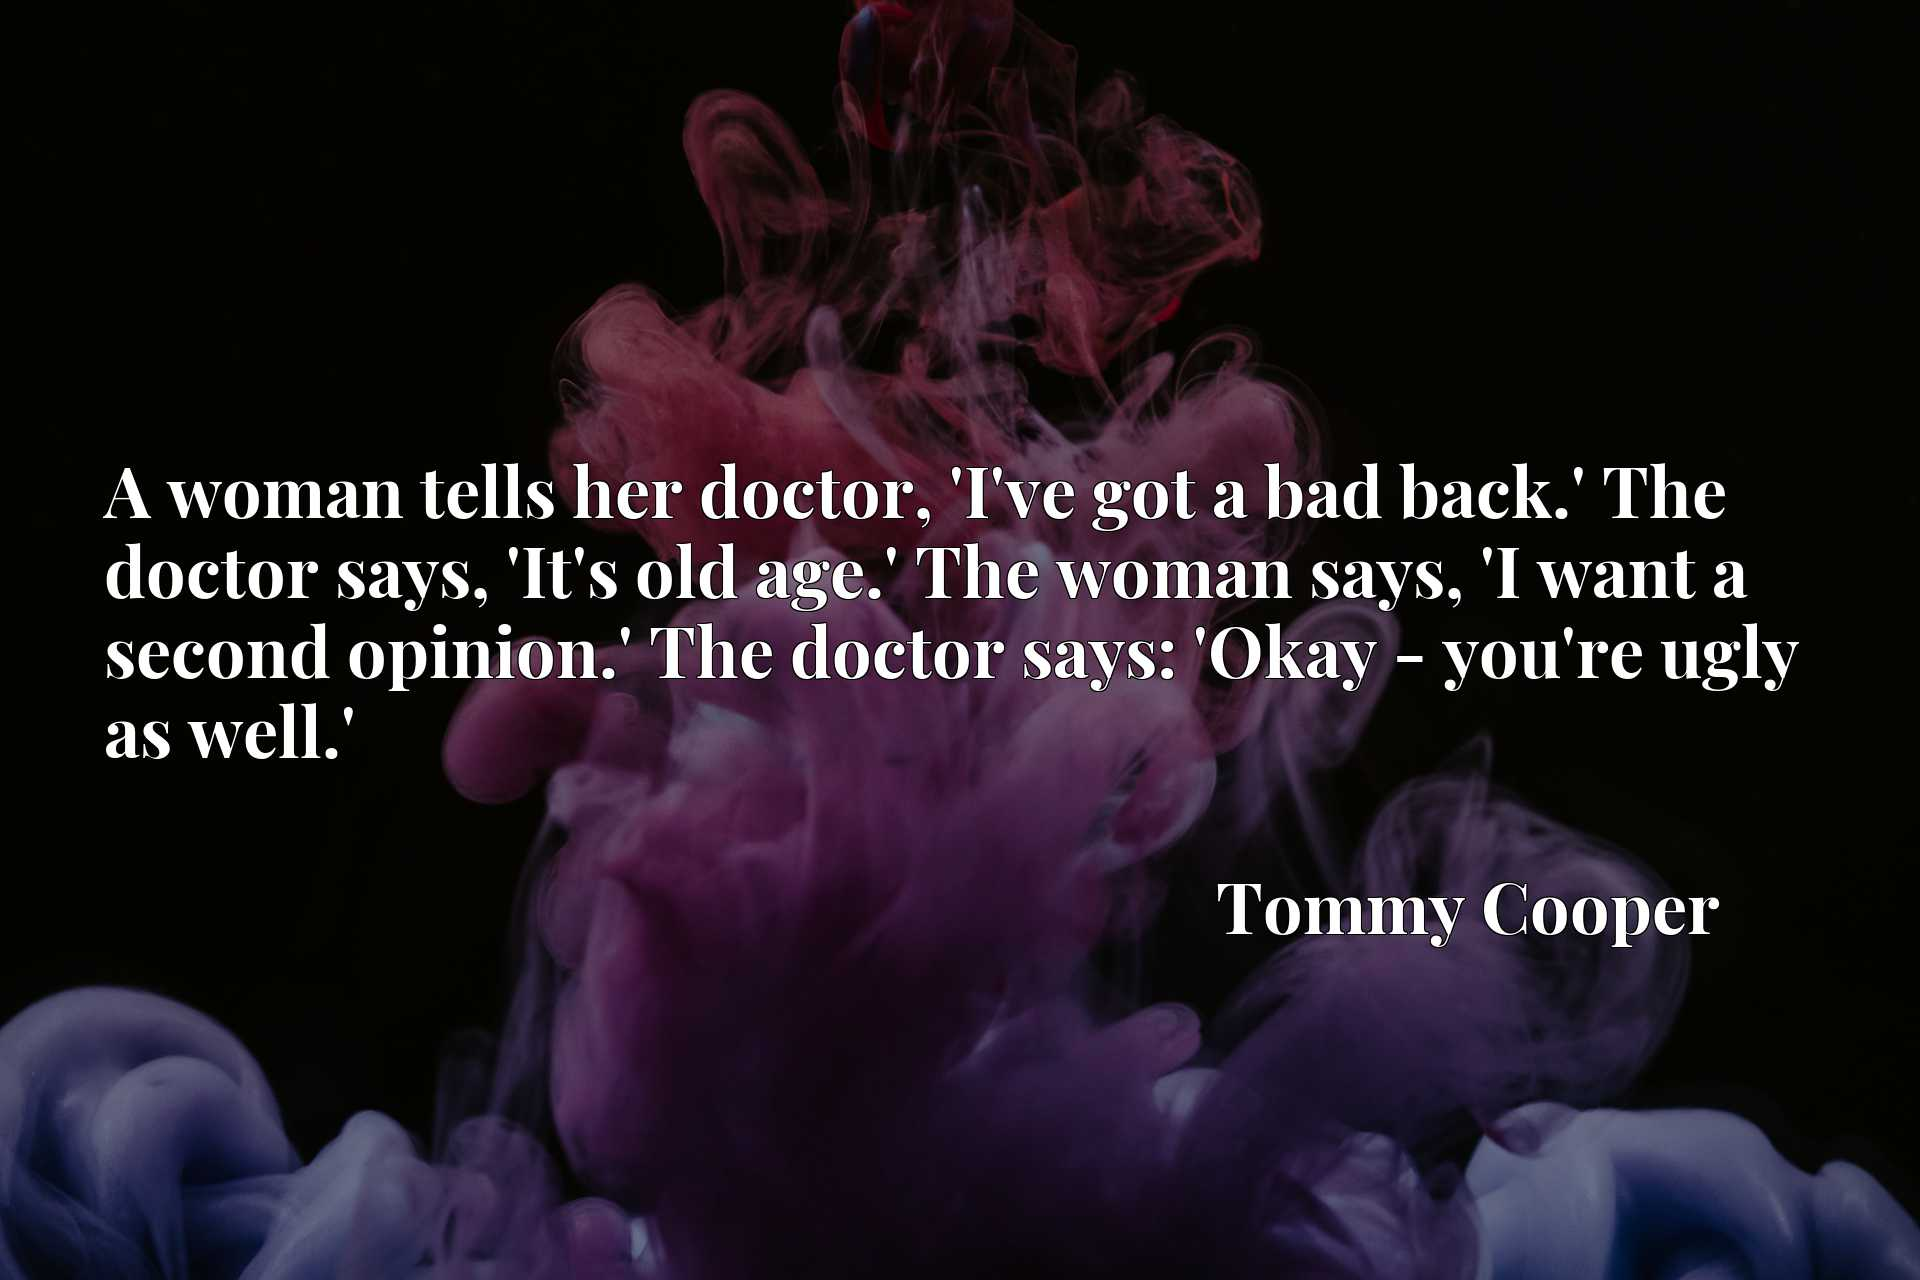 A woman tells her doctor, 'I've got a bad back.' The doctor says, 'It's old age.' The woman says, 'I want a second opinion.' The doctor says: 'Okay - you're ugly as well.'